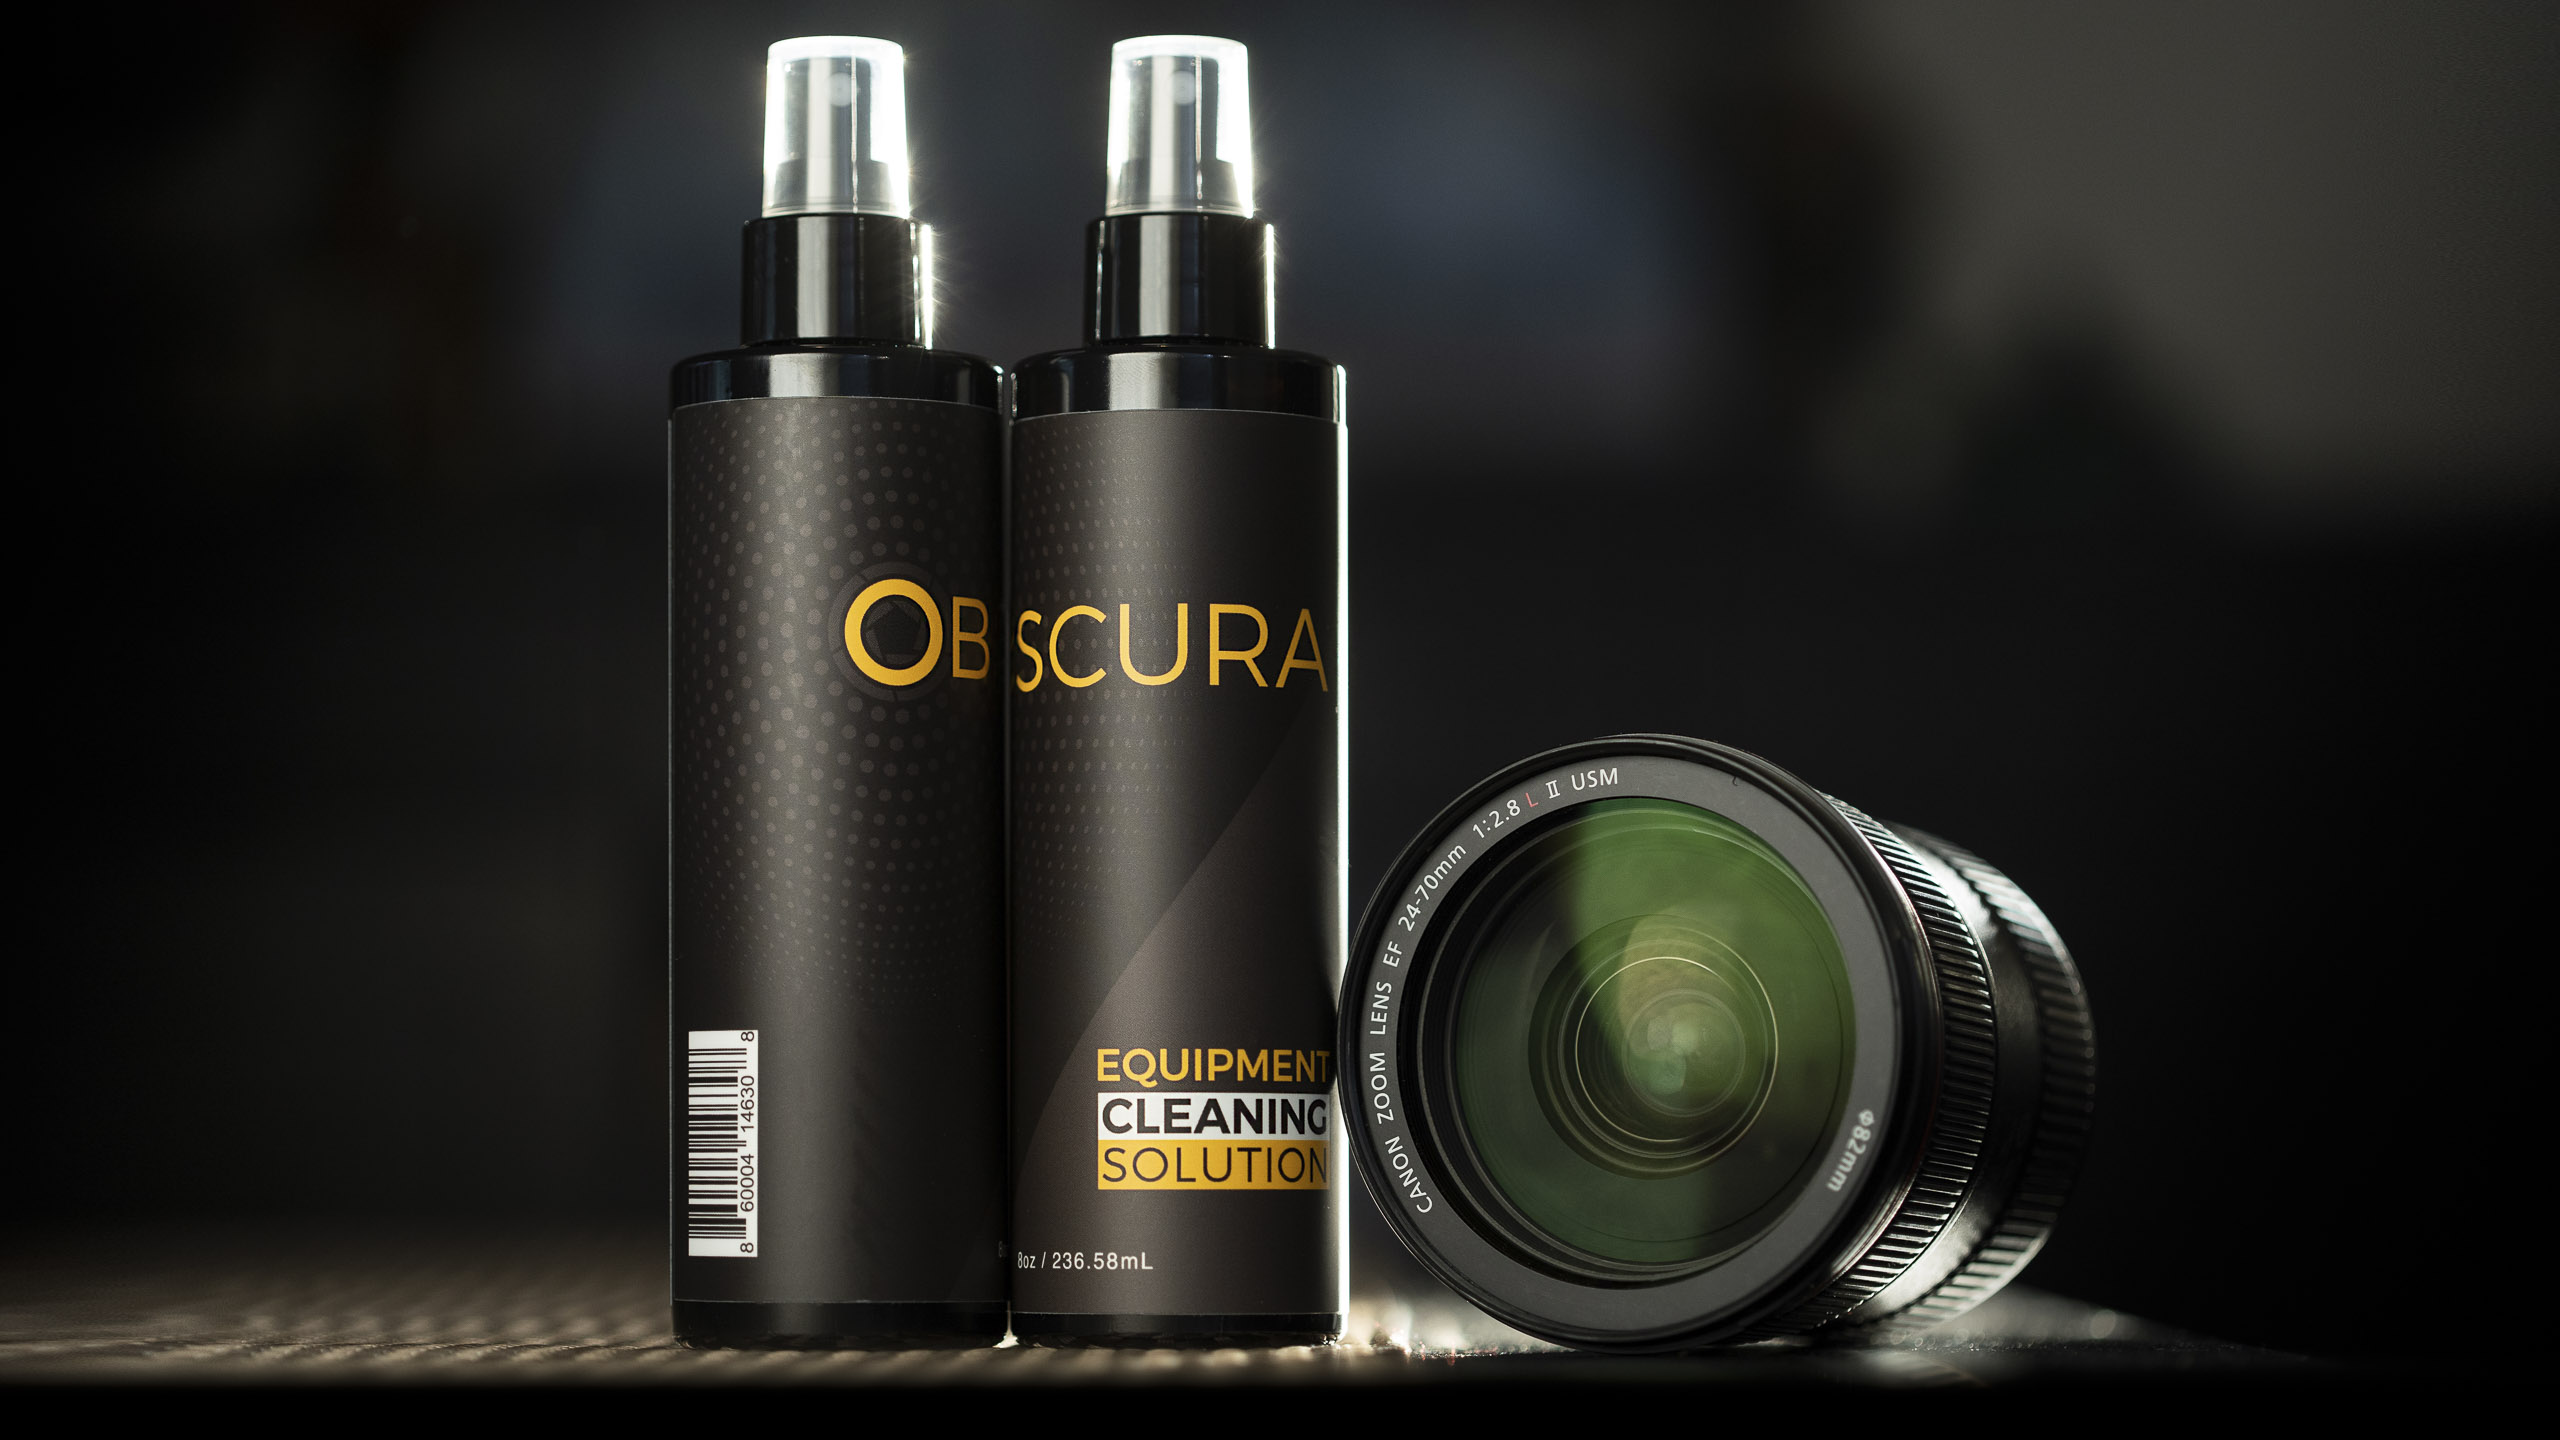 Obscura SF Equipment Cleaning Solution